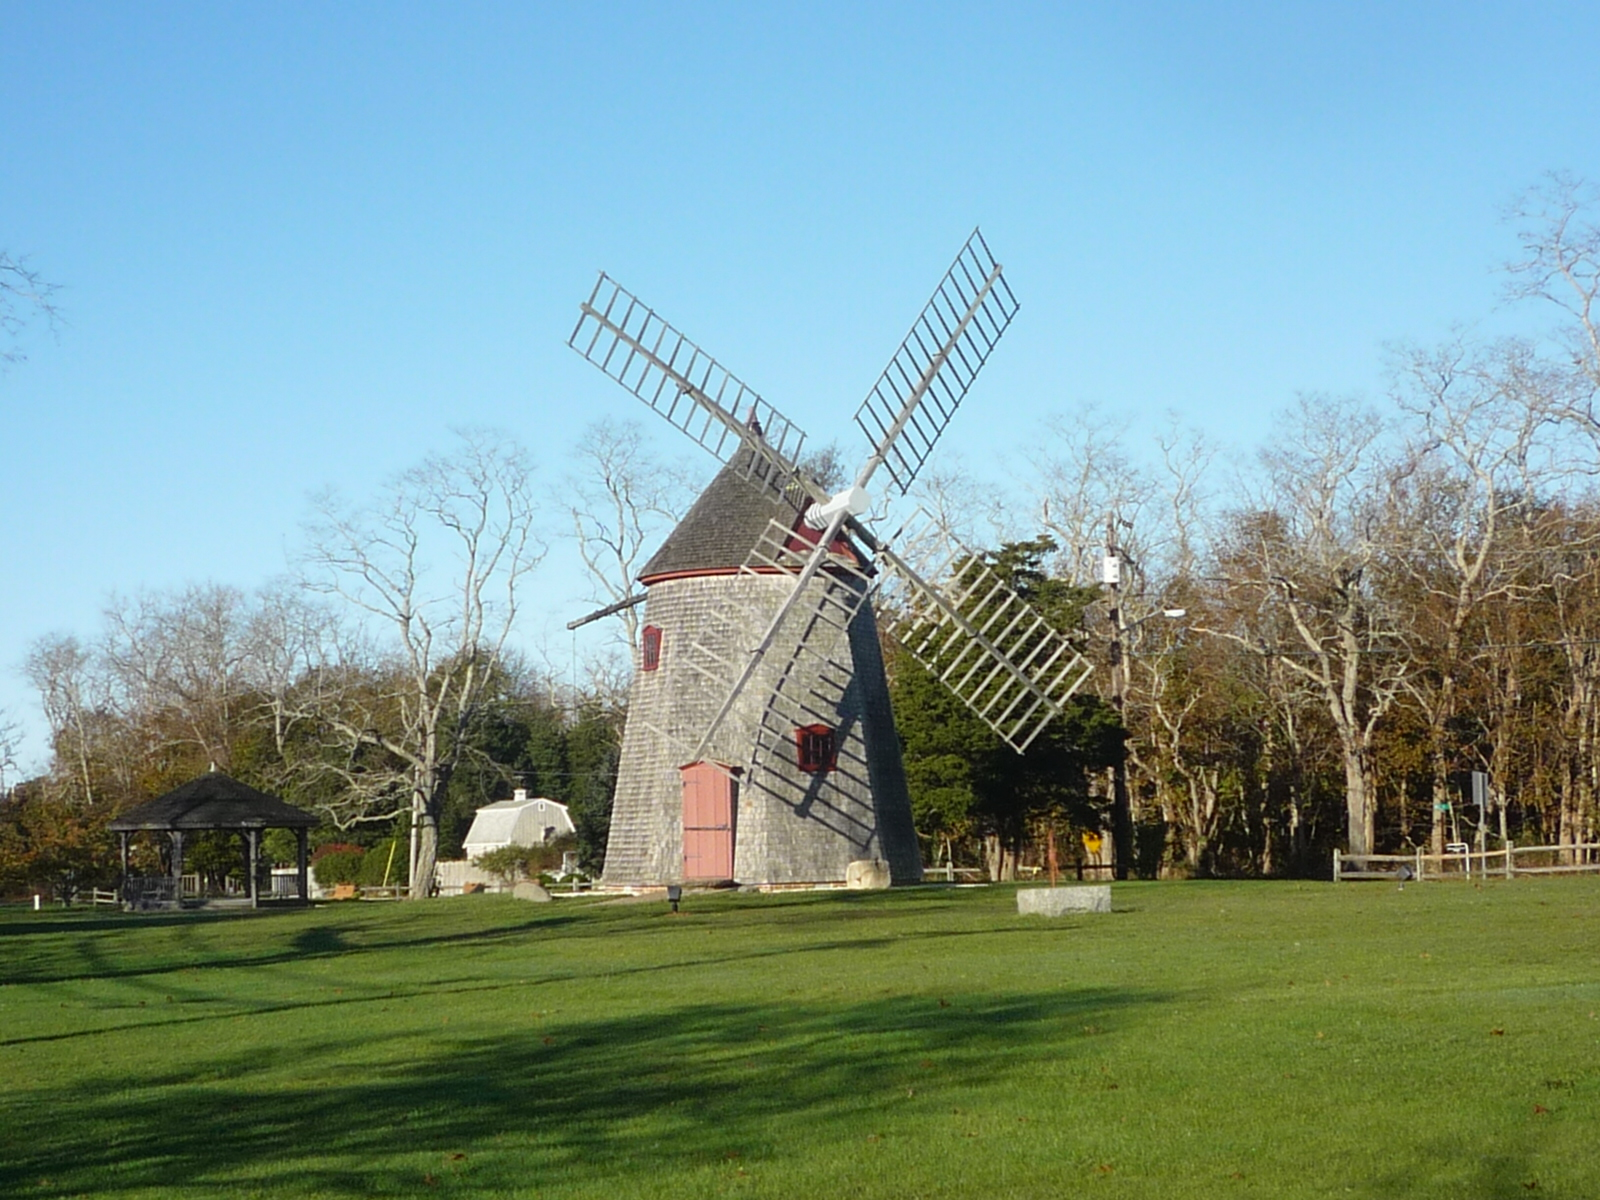 Image of Eastham Windmill, Eastham MA